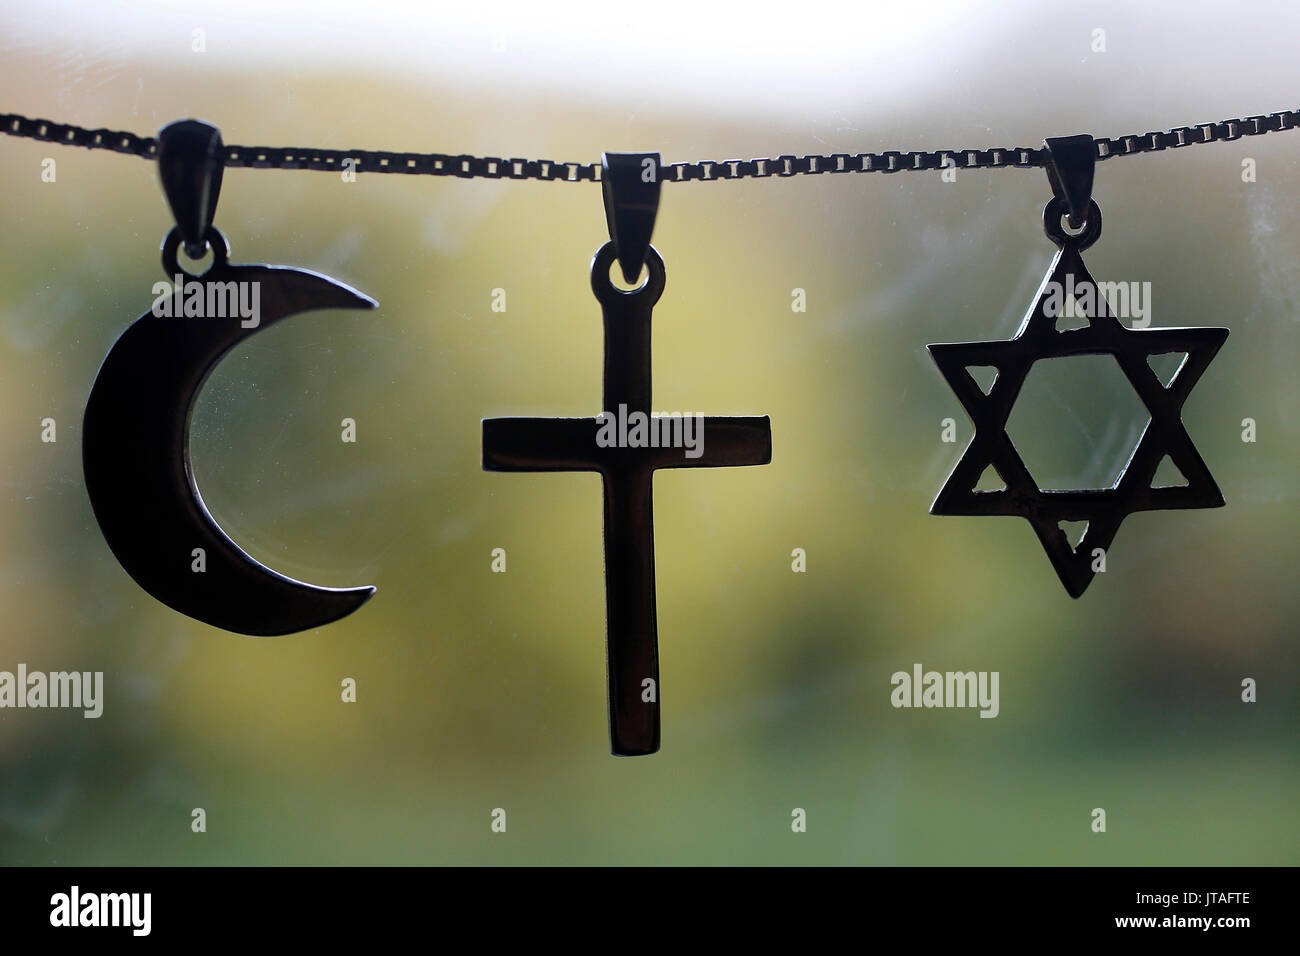 Symboles de l'Islam, le christianisme et le judaïsme, Eure, France, Europe Photo Stock